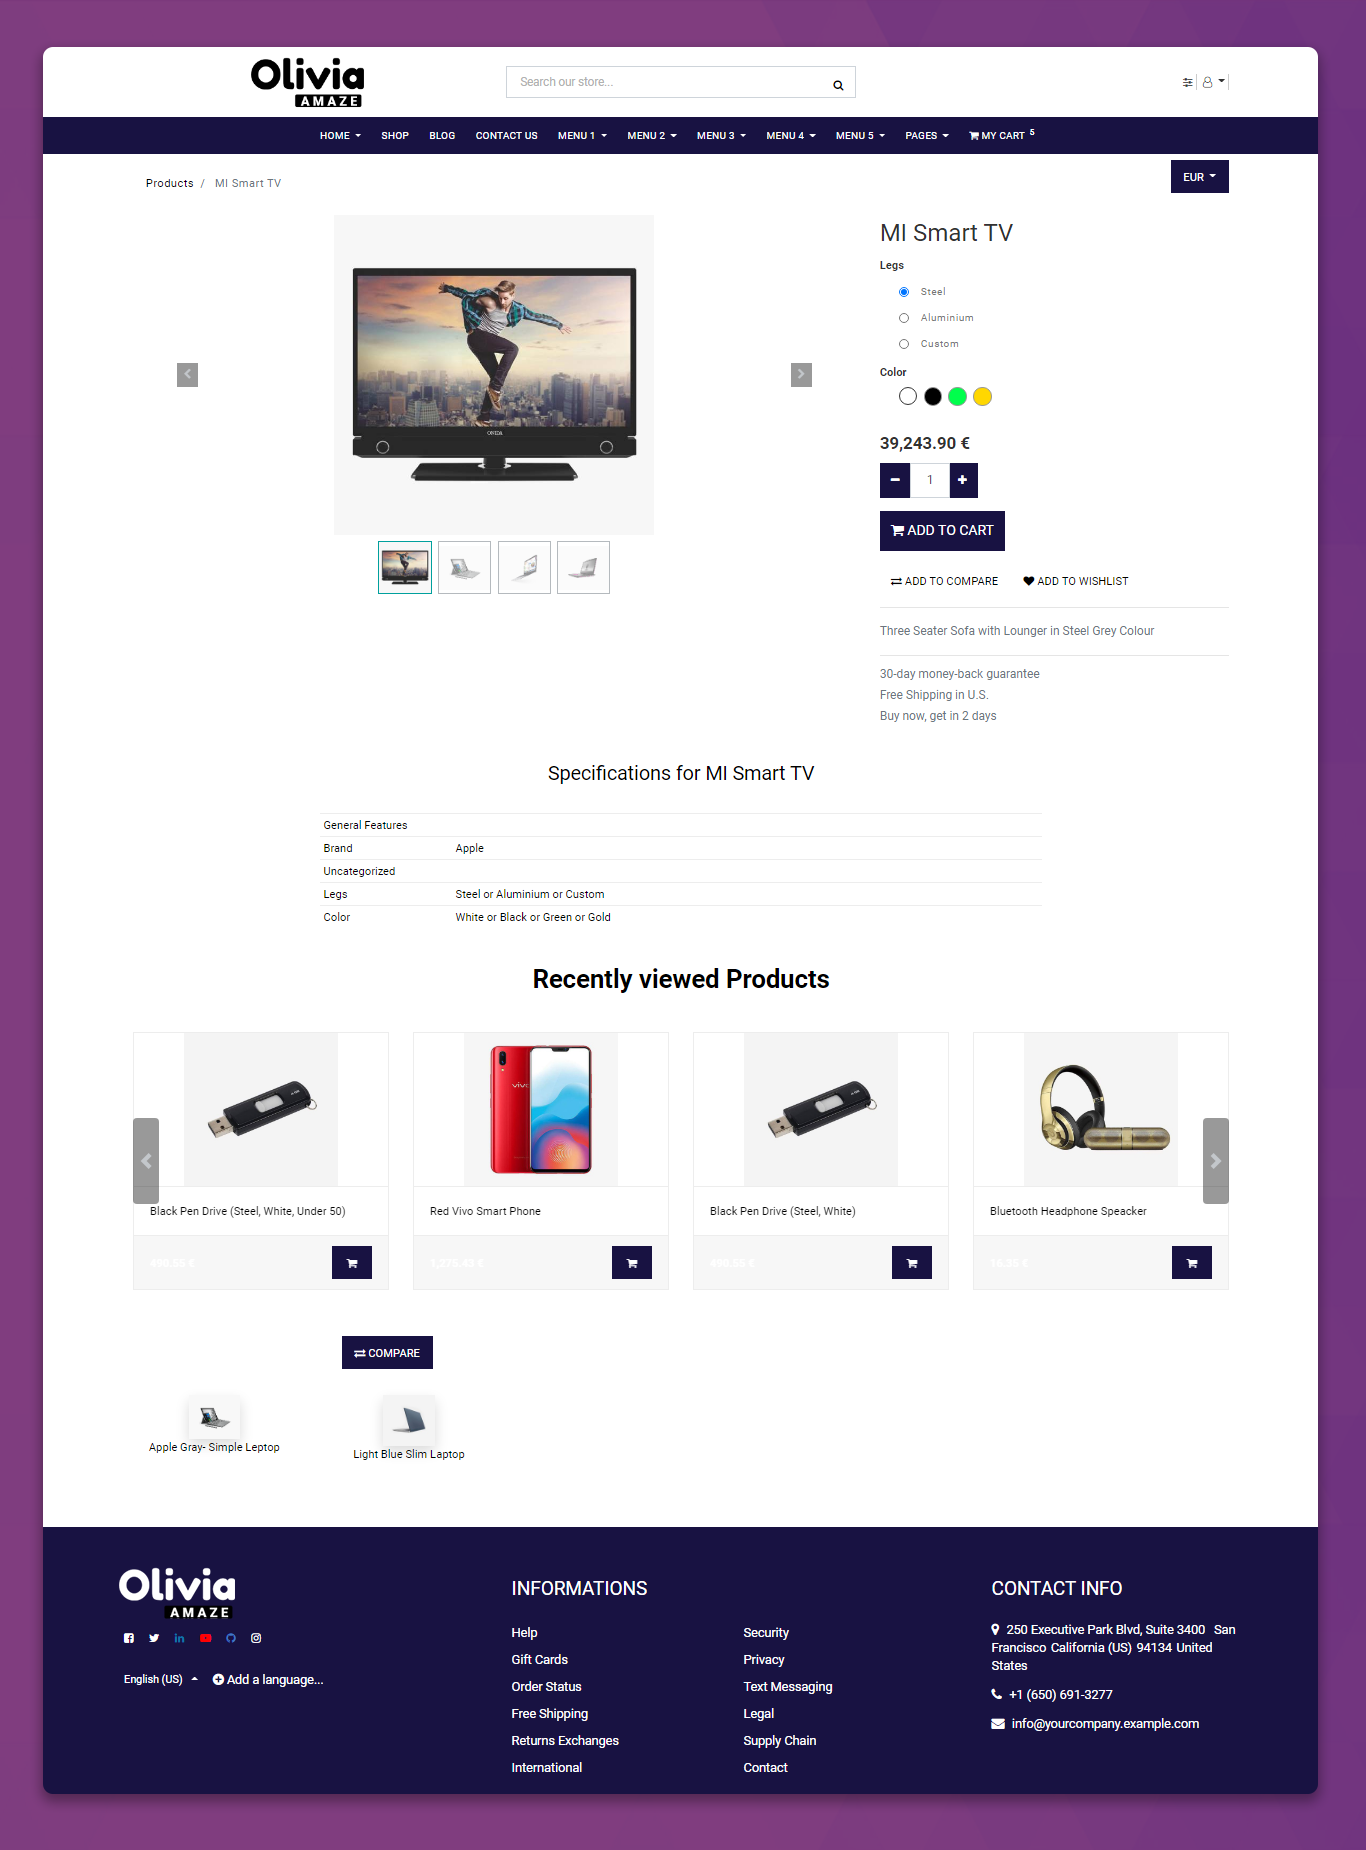 HTML5 odoo theme, Dentist odoo theme, Health Care theme for odoo, gym odoo theme, yoga odoo theme